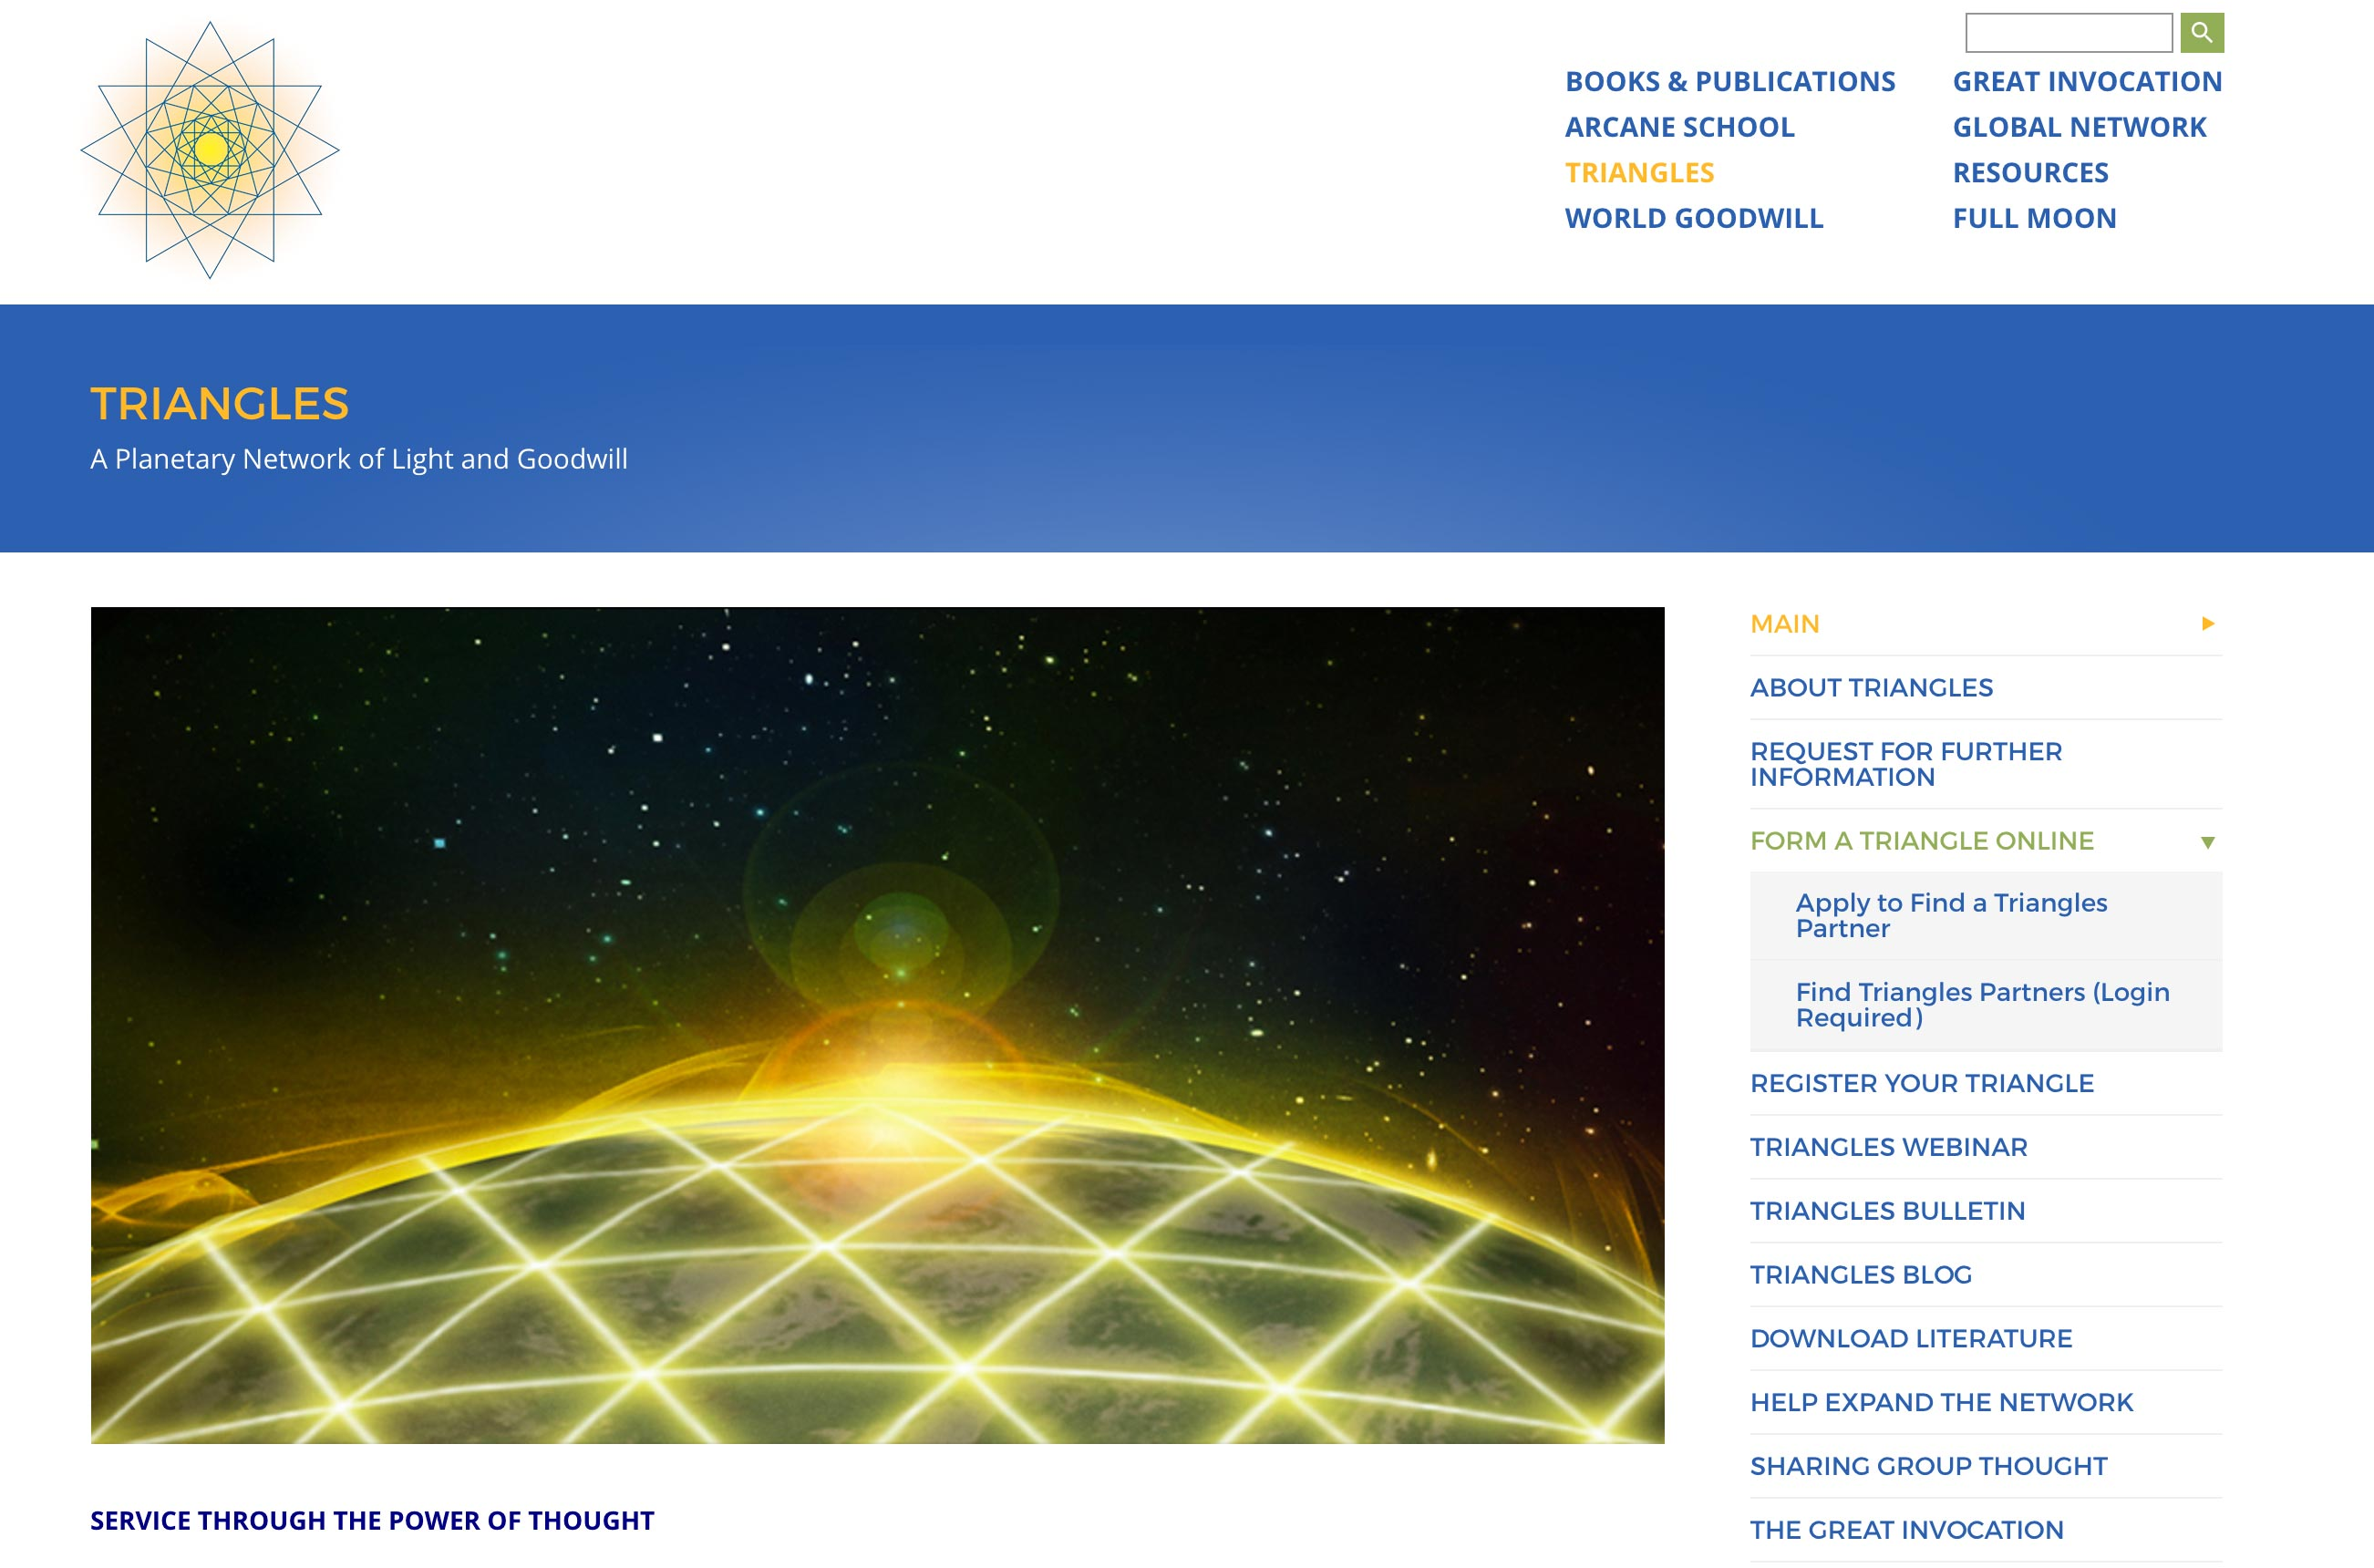 Screenshot of The Lucis Trust website Triangles service page